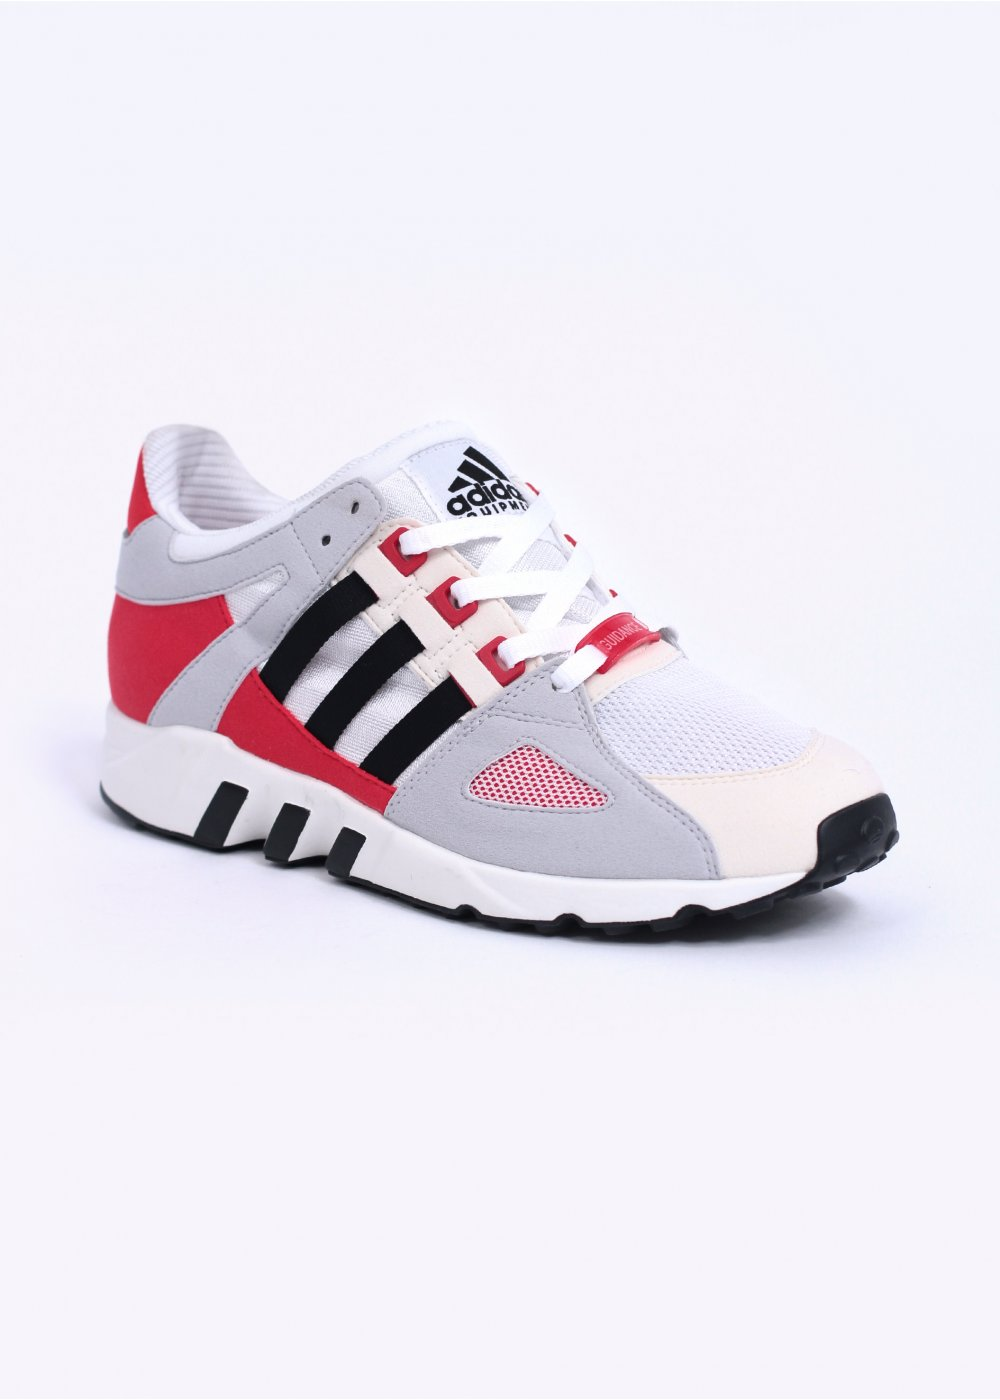 b031bcd9d65f Equipment EQT Running Guidance 93 Trainers - Running White   Black   Red